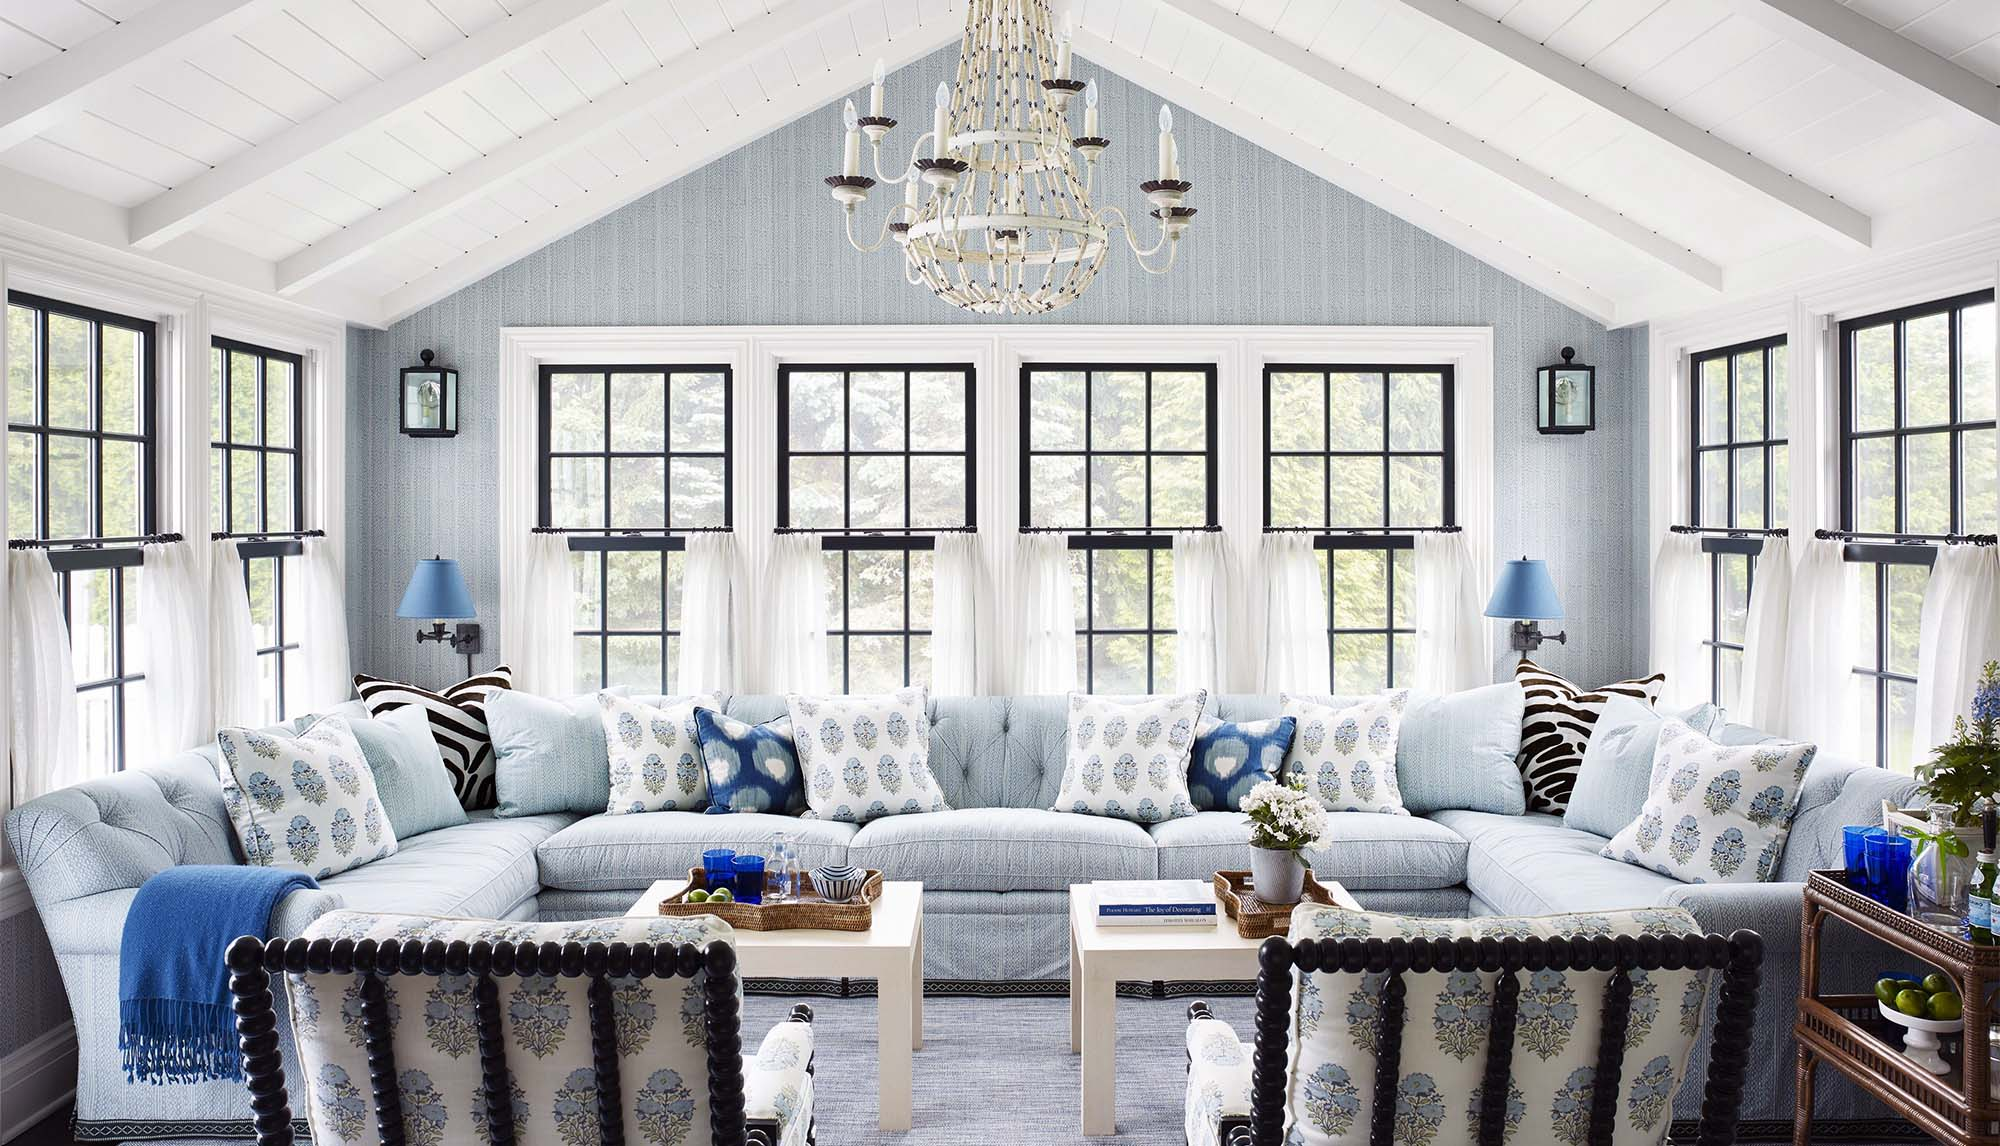 sunroom builder in NJ beautiful sinroom vaulted ceilings chandelier - Gambrick